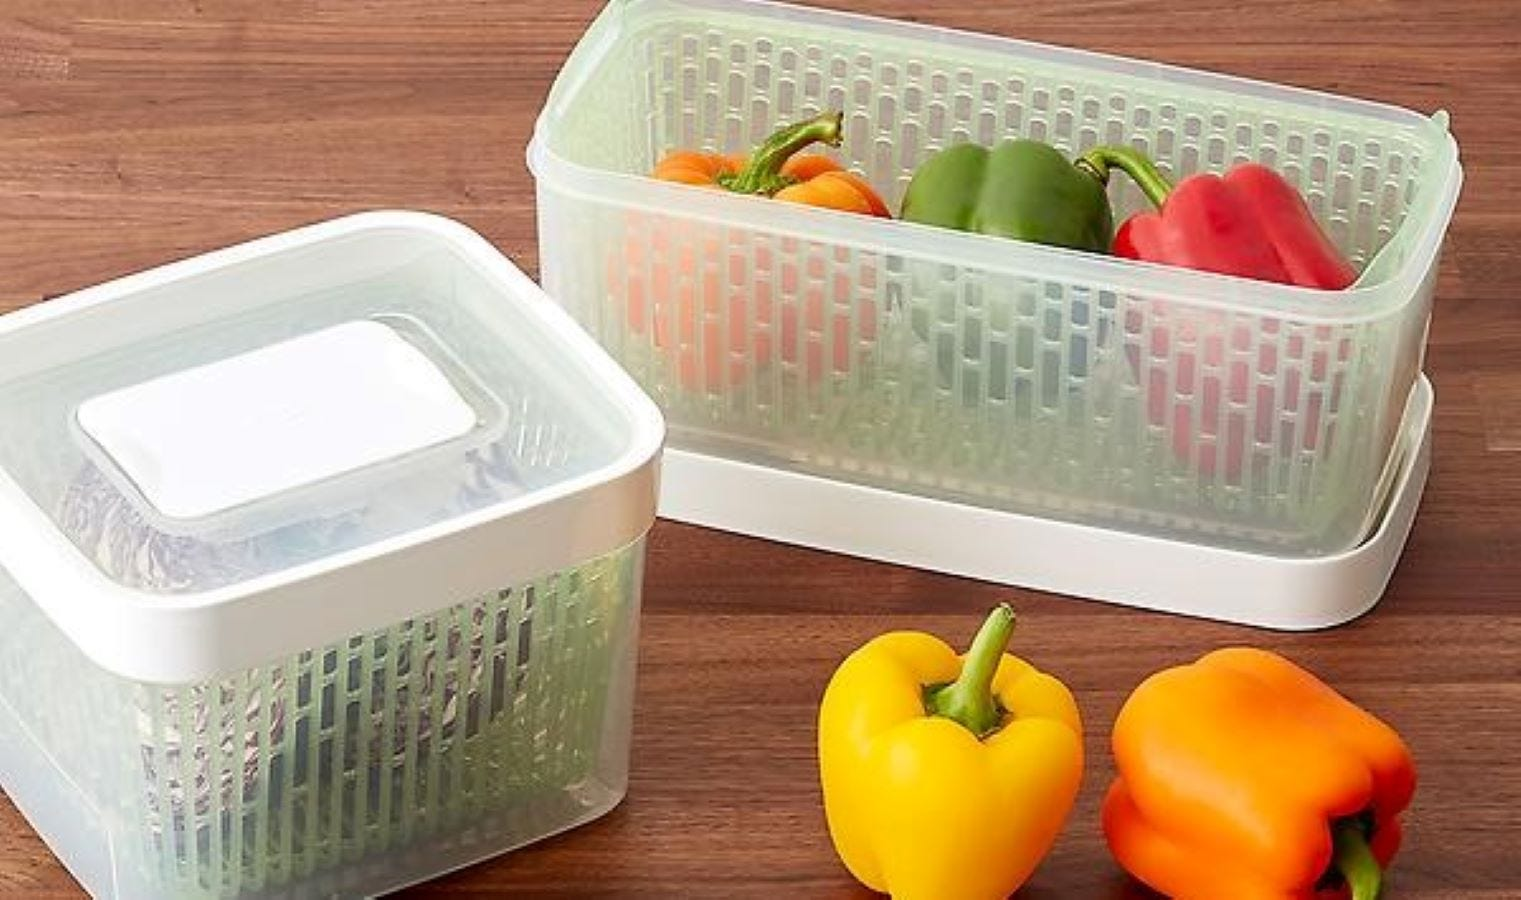 Two Oxo GreeSaver Containers with produce in them.